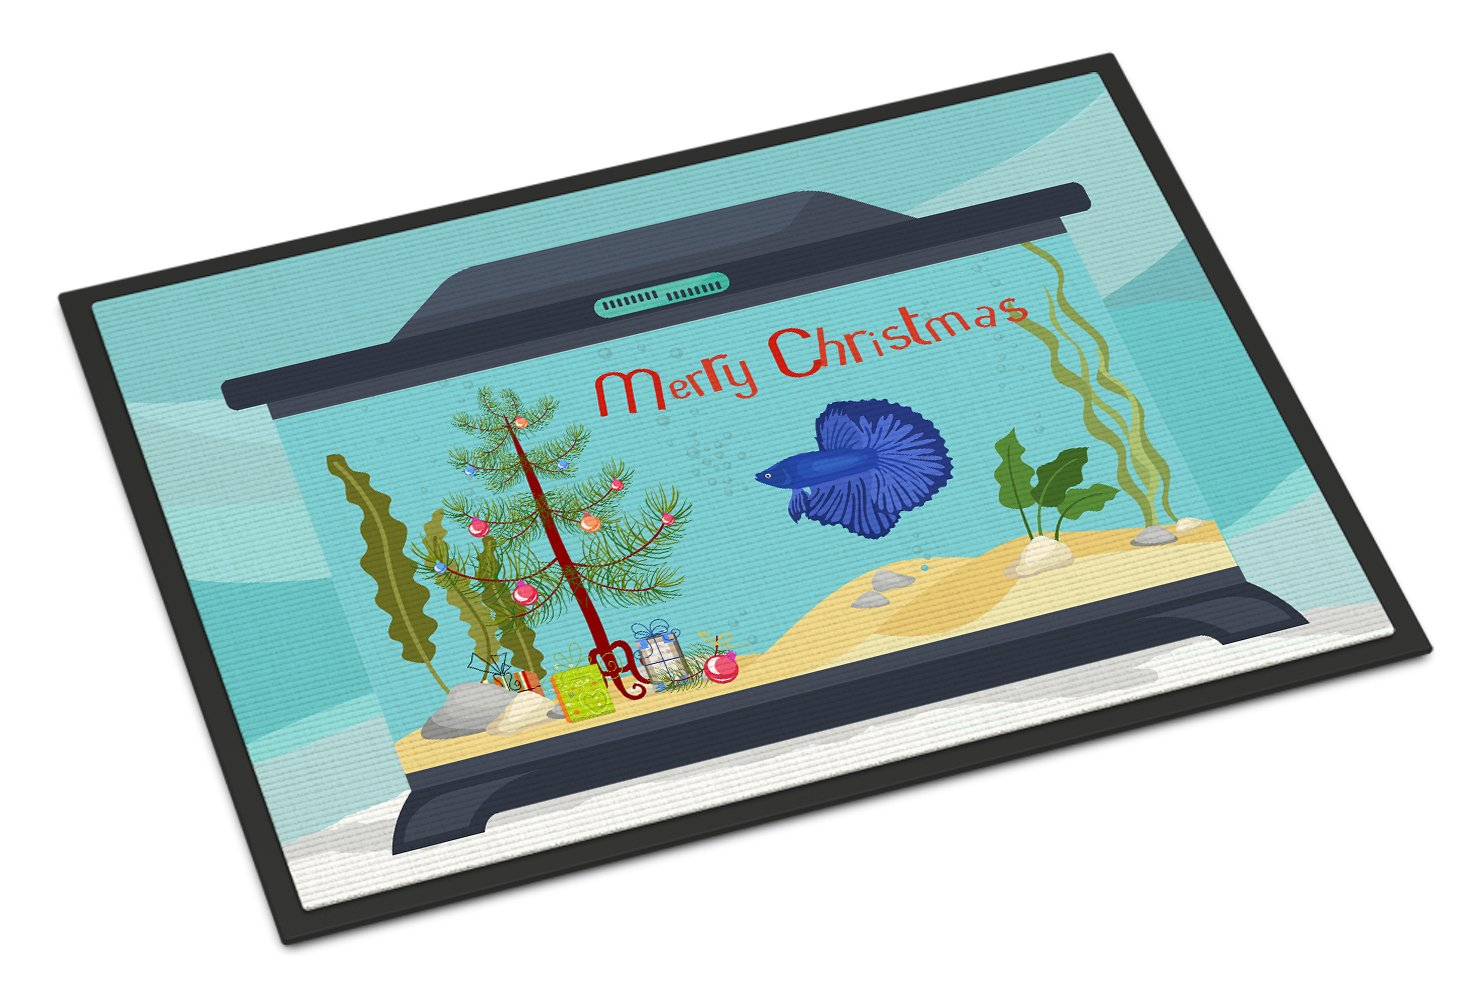 Delta Tail Betta Fish Merry Christmas Indoor or Outdoor Mat 24x36 CK4507JMAT by Caroline's Treasures